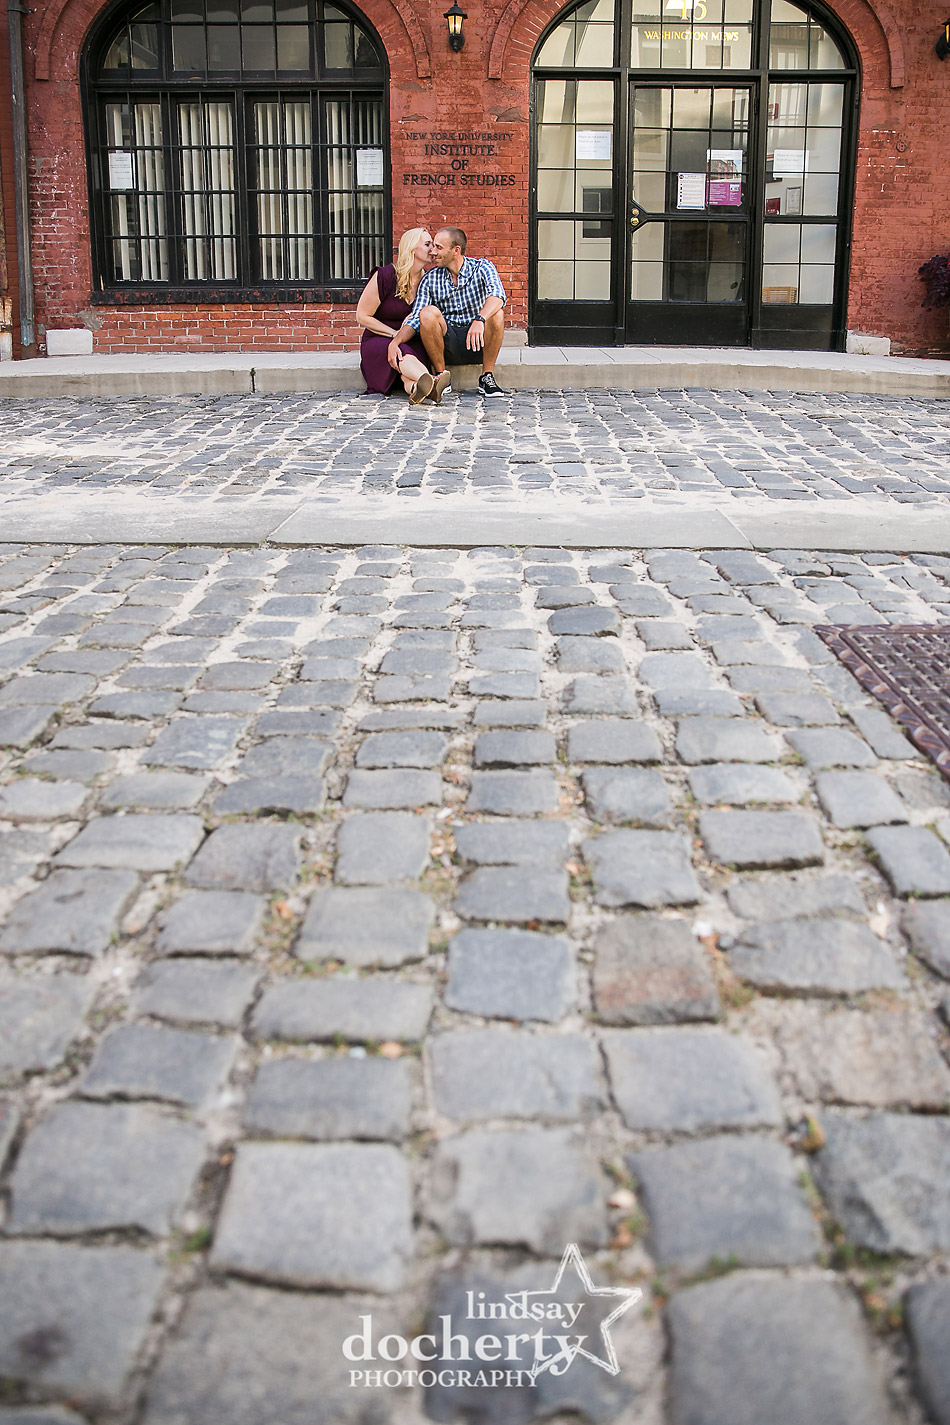 sweet couple picture on cobblestone street in West Village